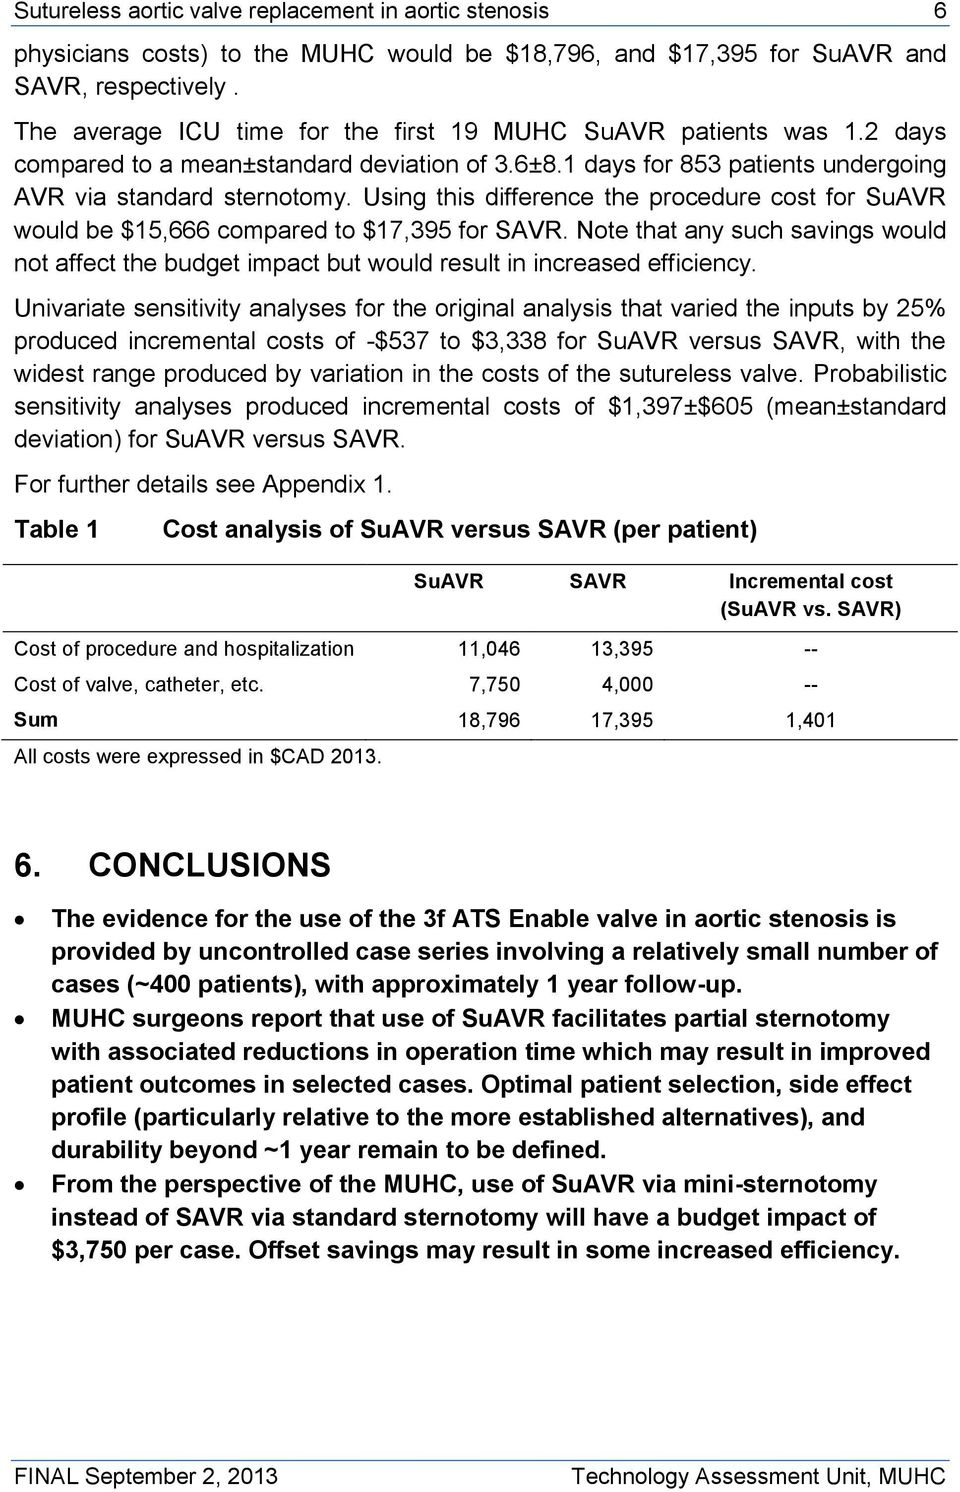 Using this difference the procedure cost for SuAVR would be $15,666 compared to $17,395 for SAVR.